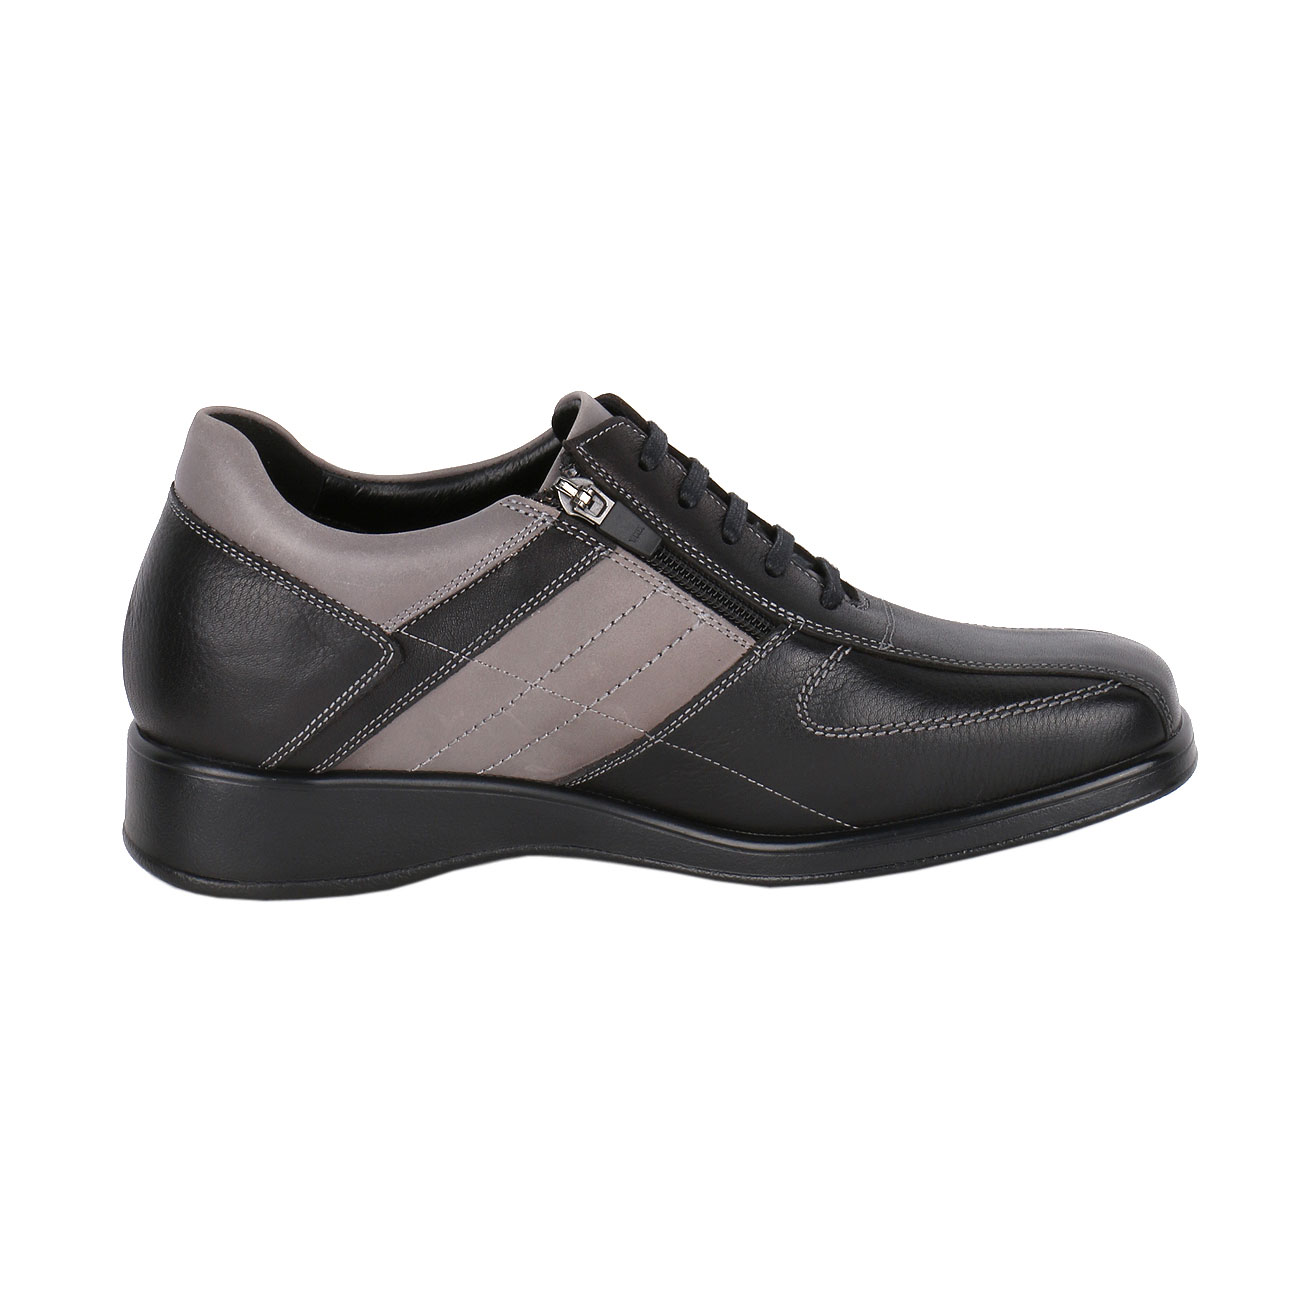 Jota Casual Leather Driving Bicycle Design Shoe 3 Tall JWC513